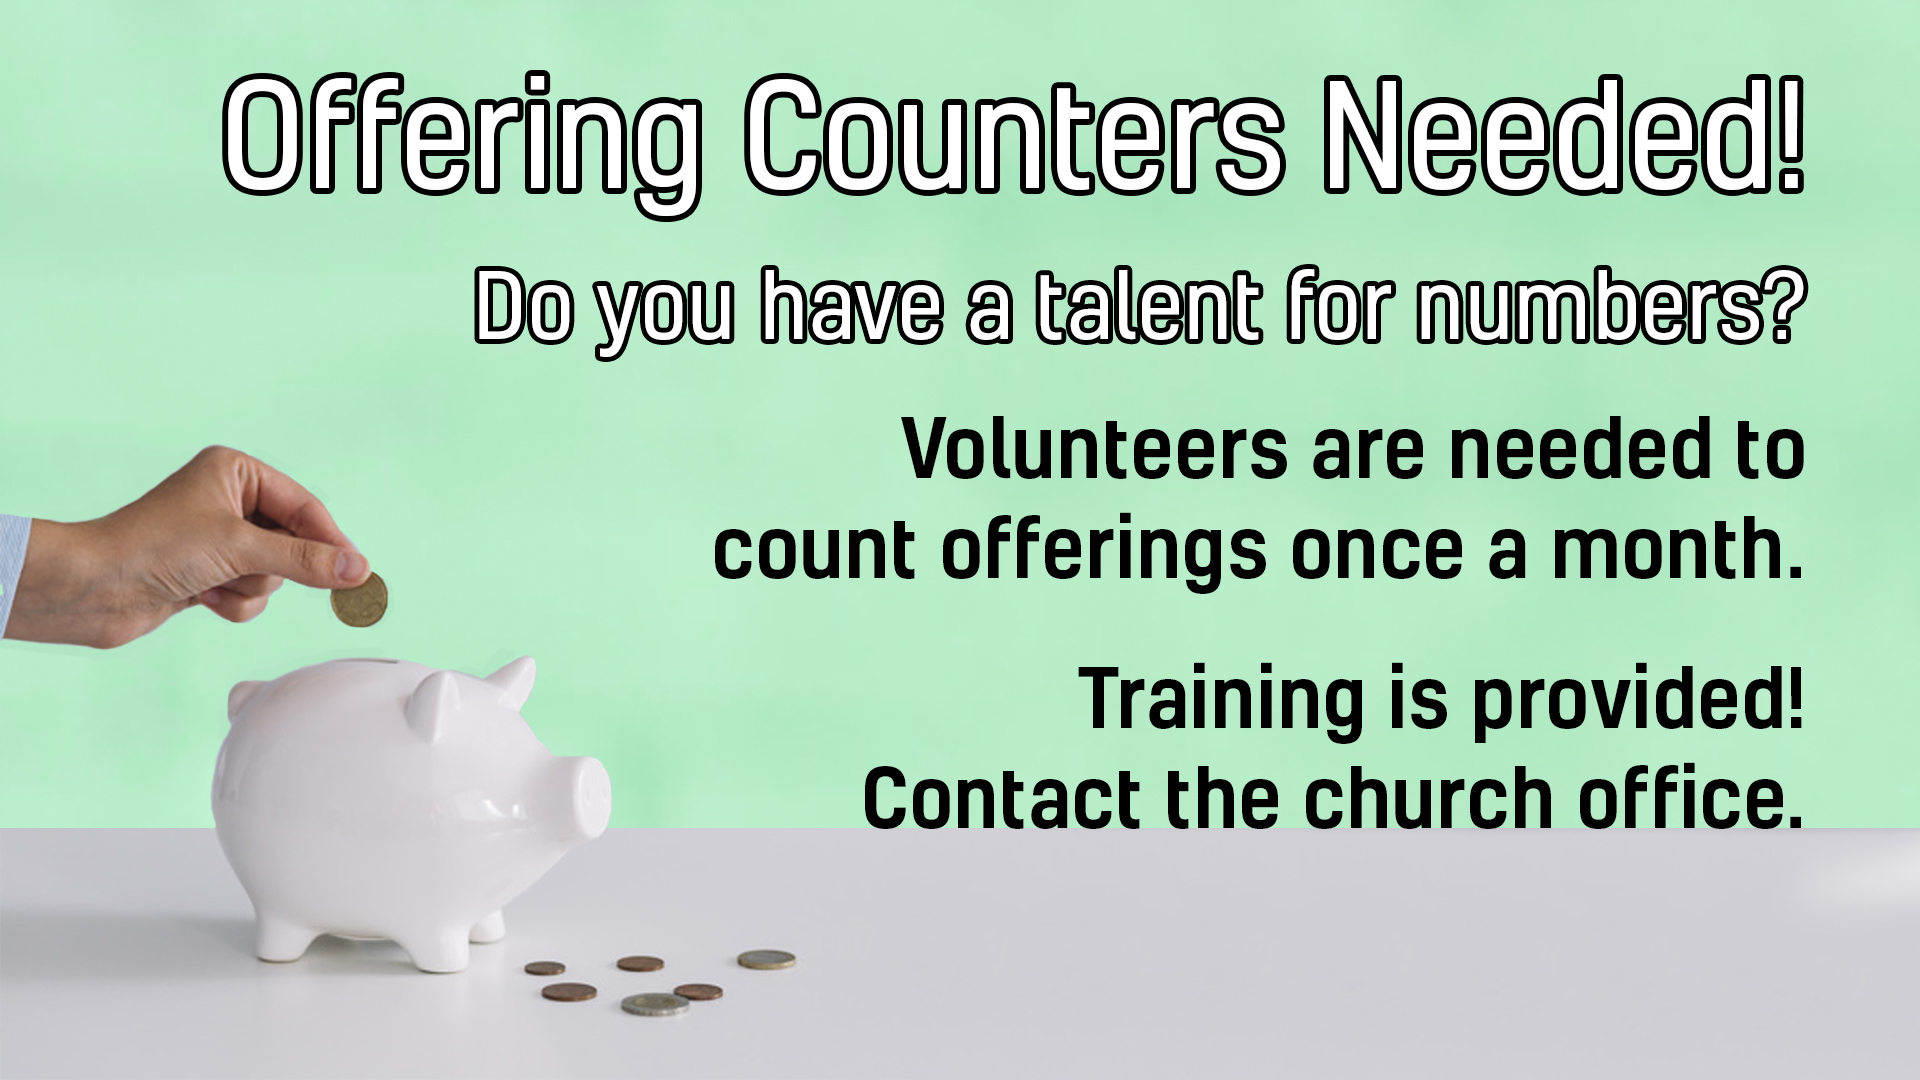 Offering COunters_01.20.19.jpg